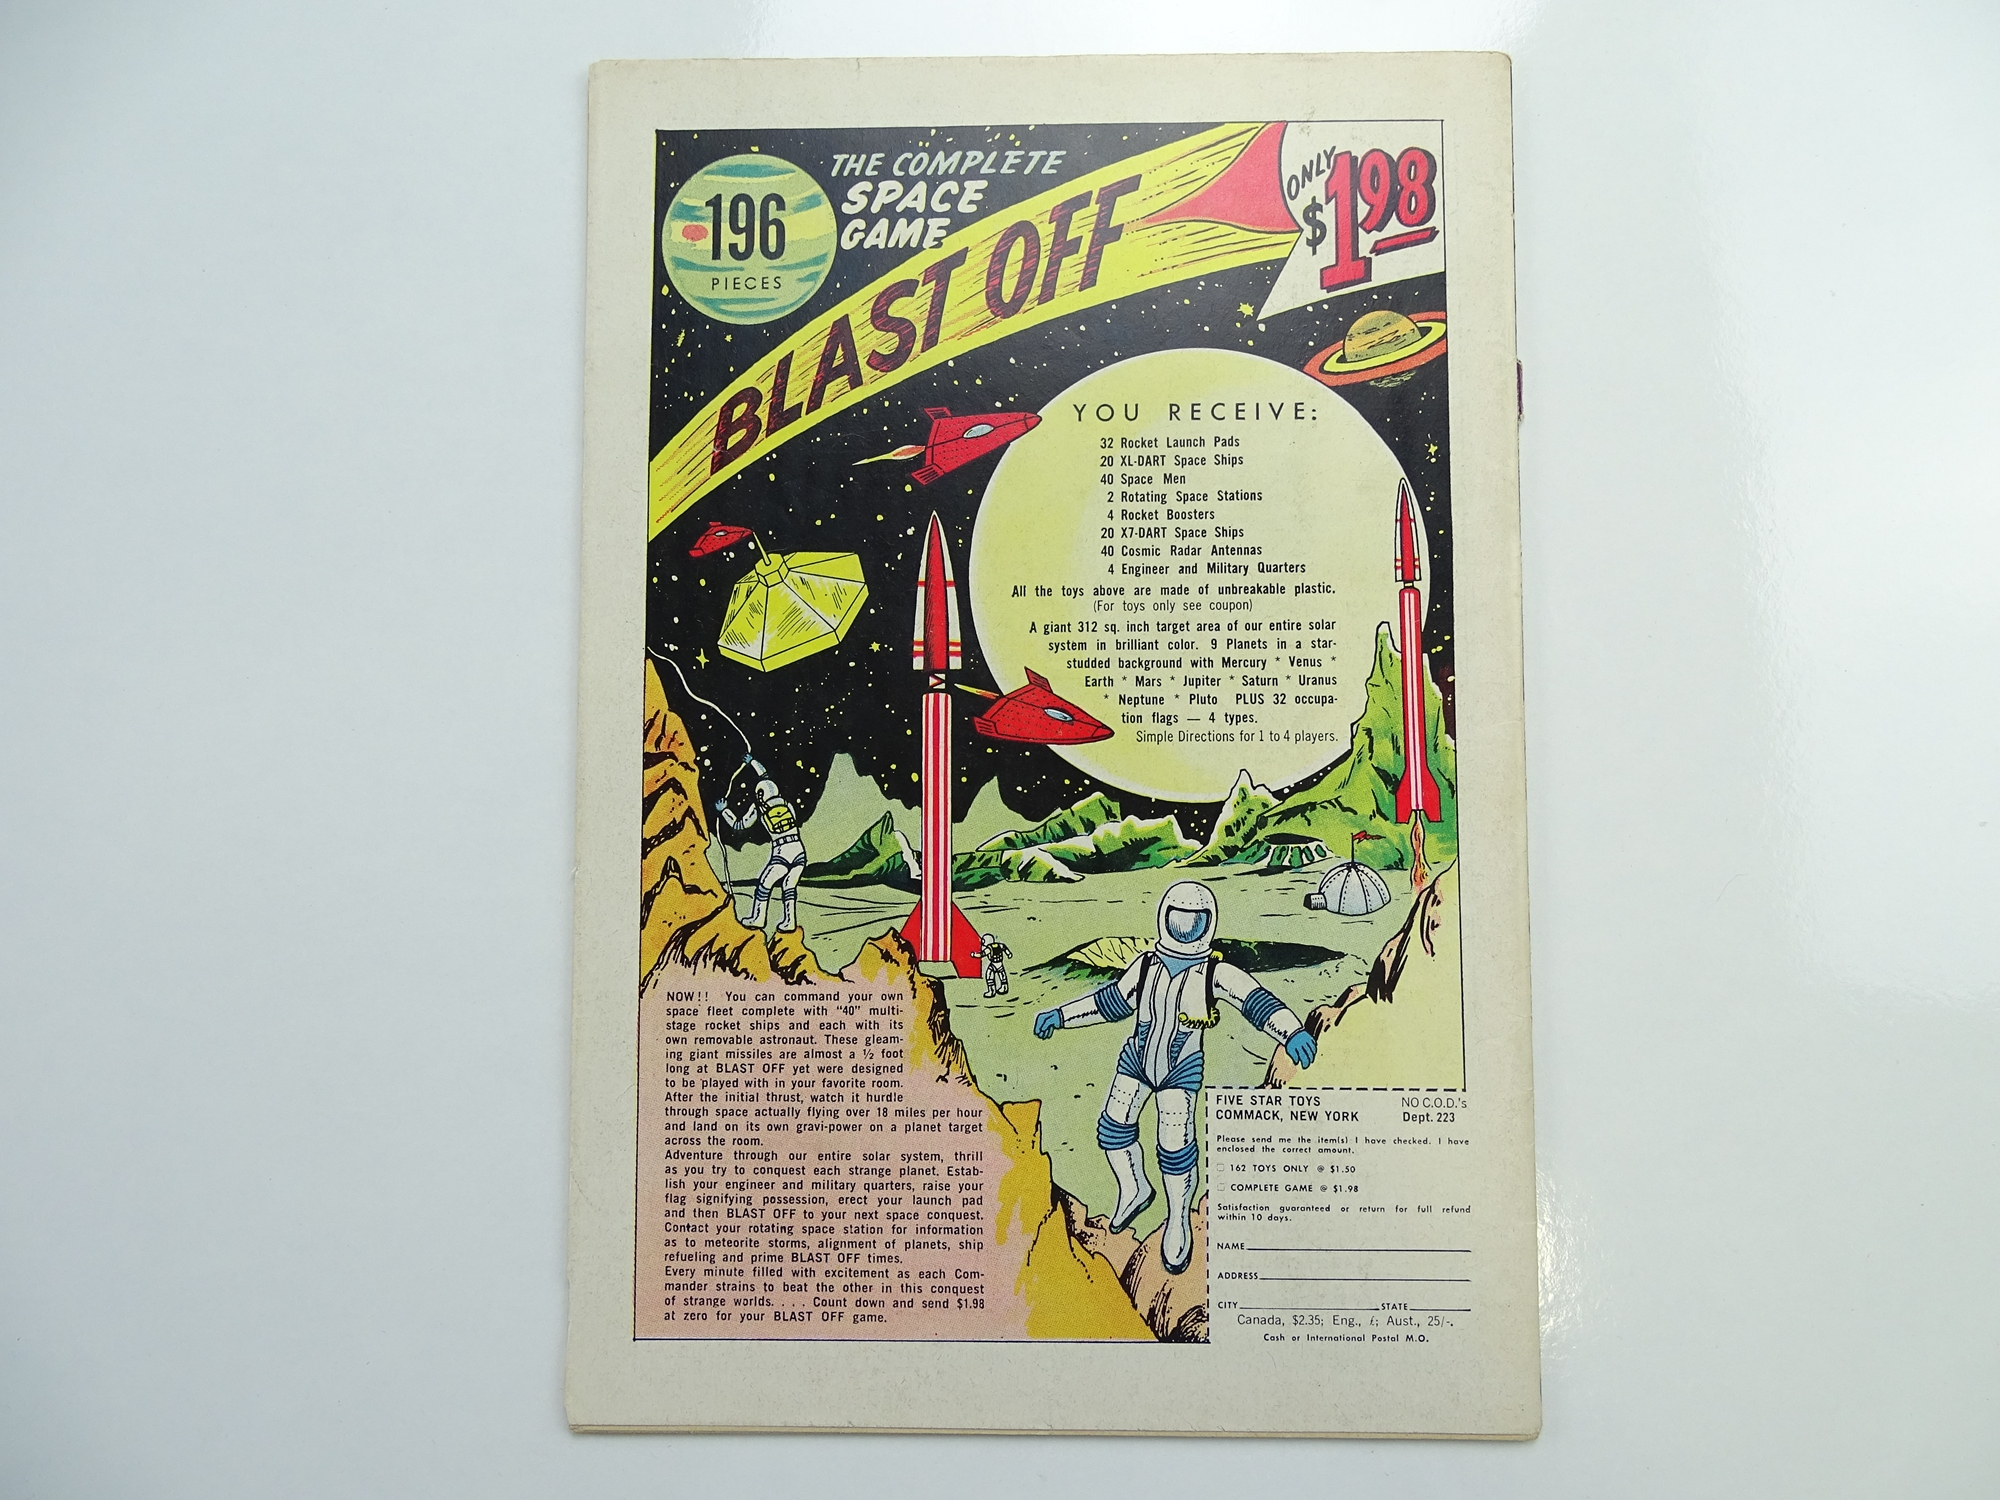 Lot 56 - JUSTICE LEAGUE OF AMERICA # 21 (1963 - DC - Cents Copy) - A key issue with 'Crisis on Earth-One',